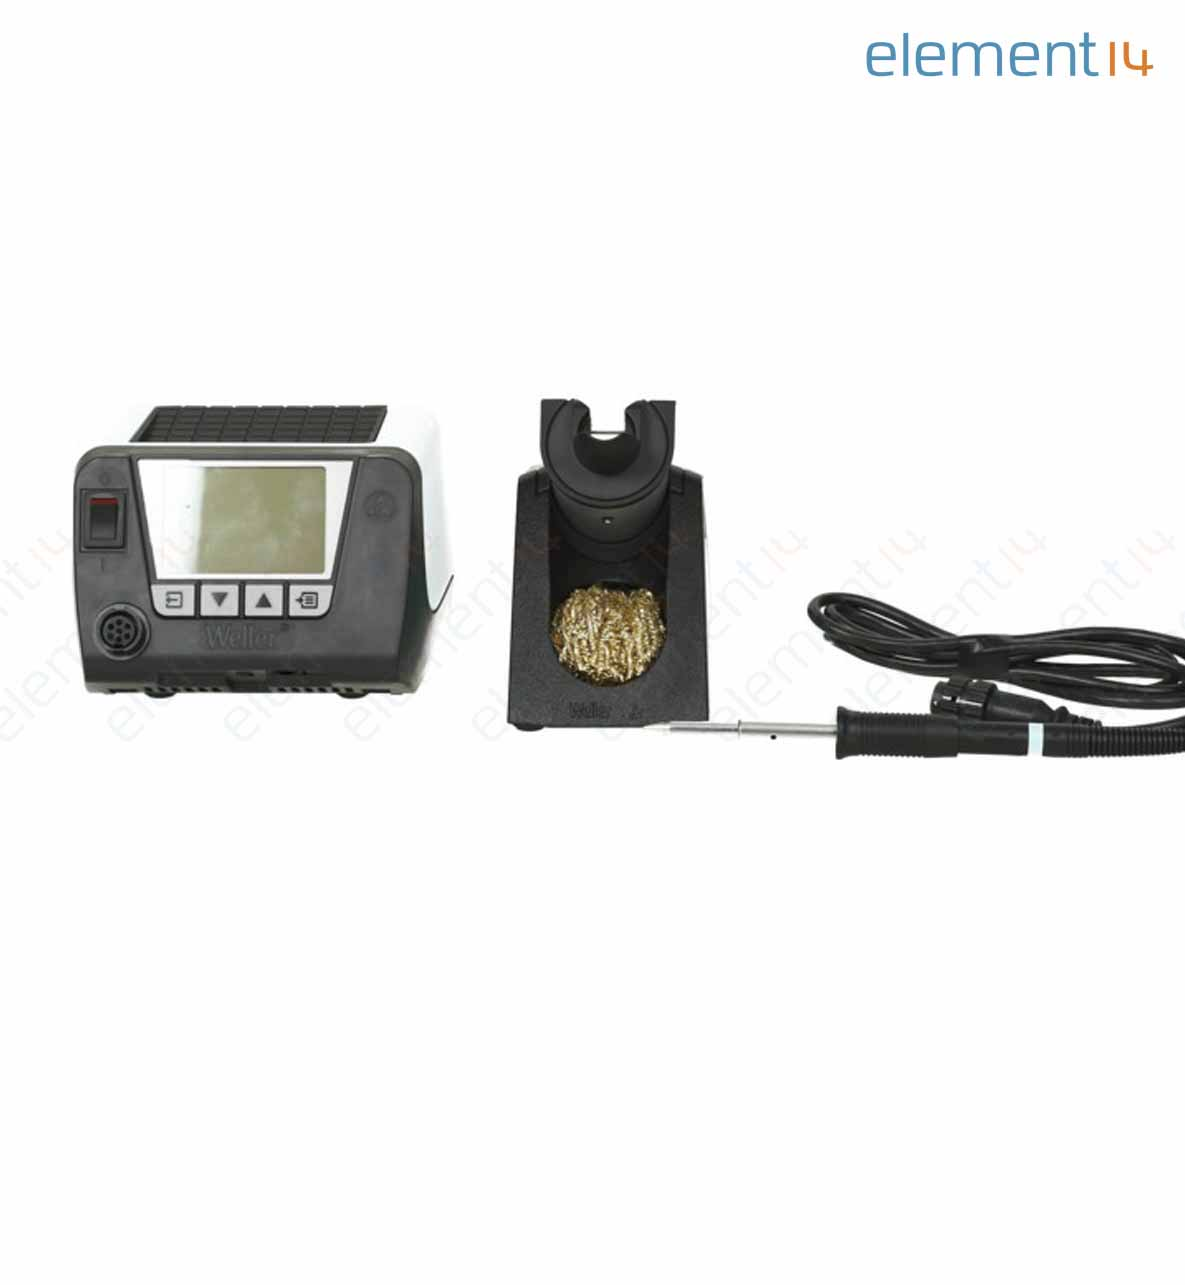 Wt 1010h Weller Soldering Station 230 V 150 W Electronics Learning Circuits Webonly Products Technology Richmedia 326kb En